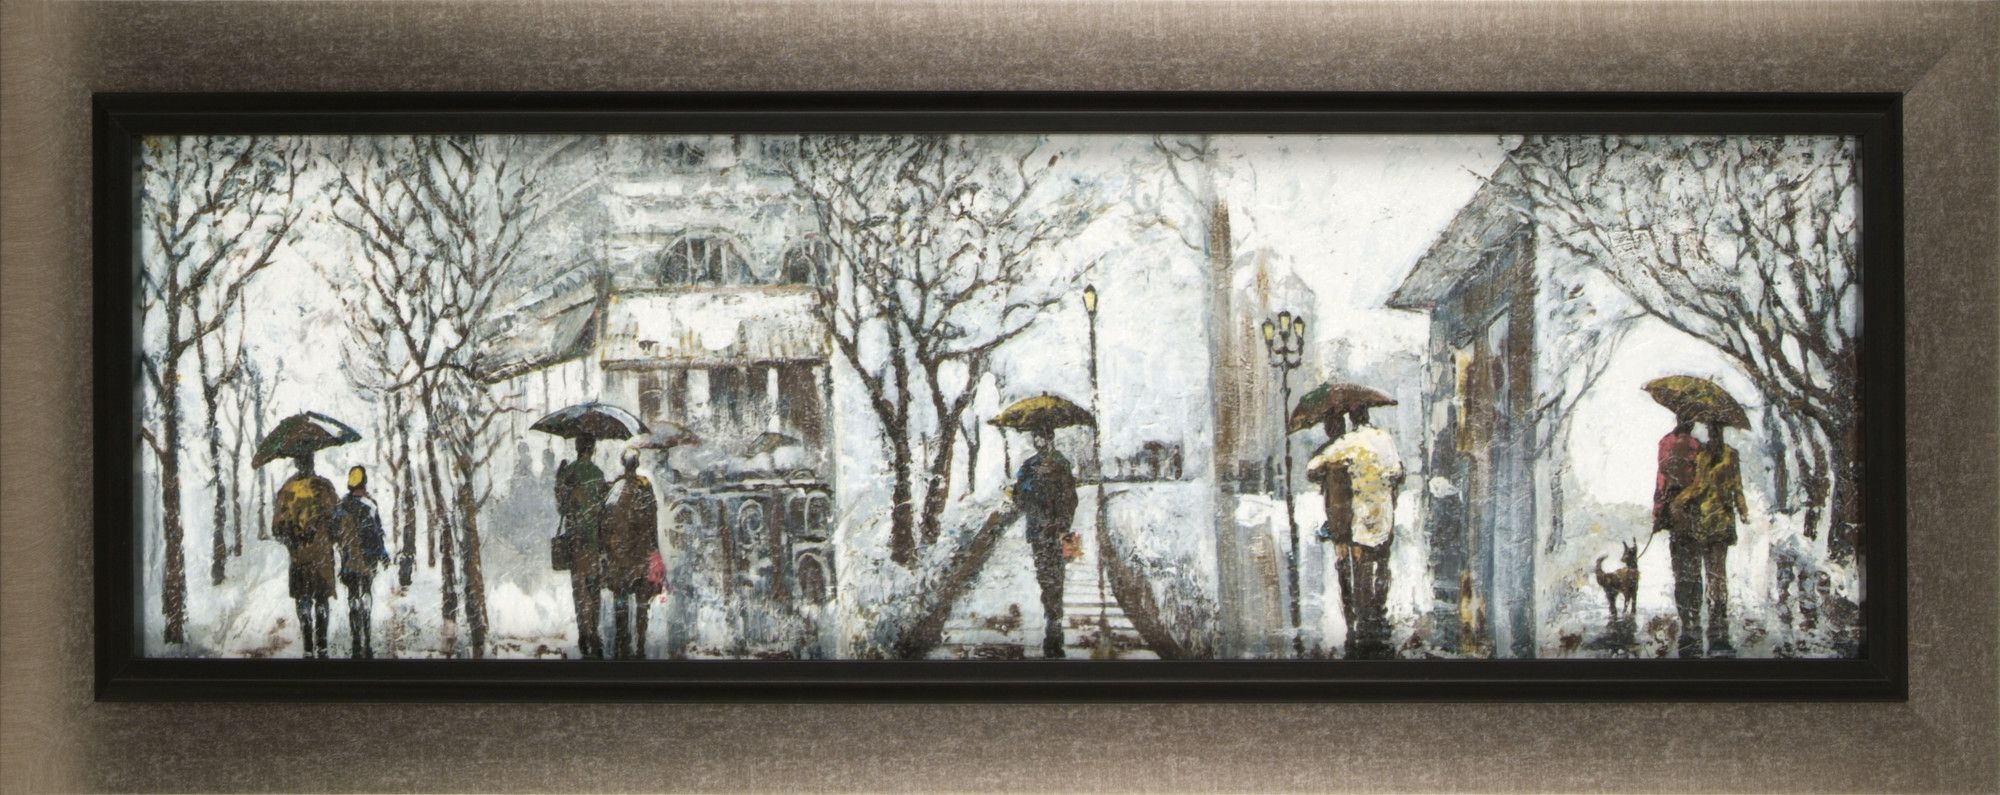 Outdoor Walk by Anastasia C. Framed Painting Print